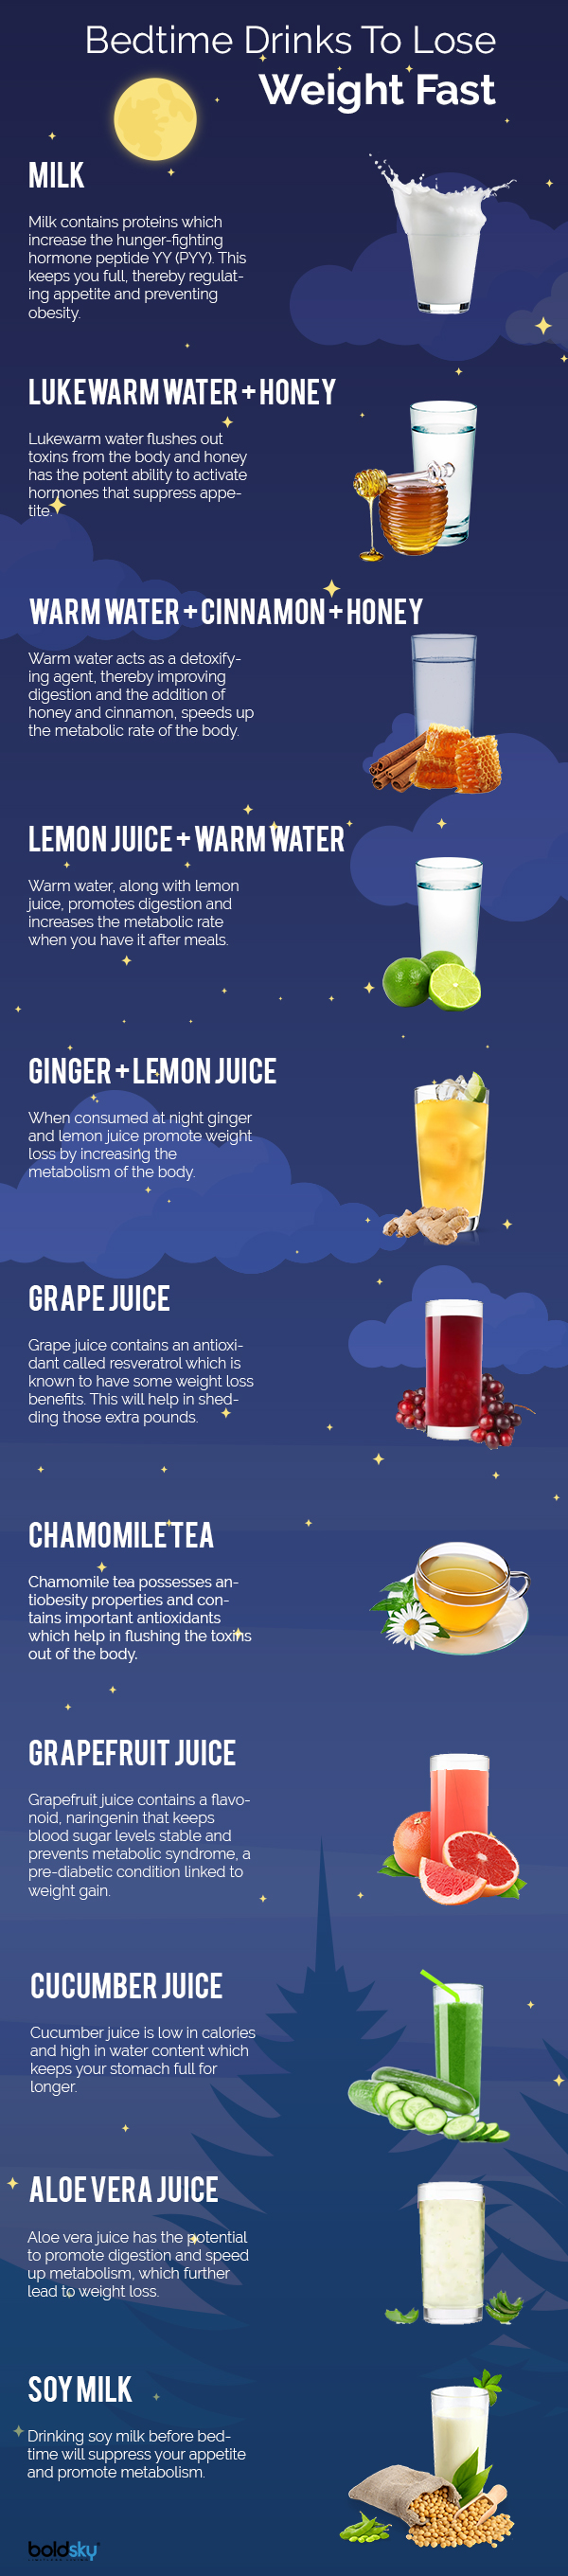 drinking during weight loss